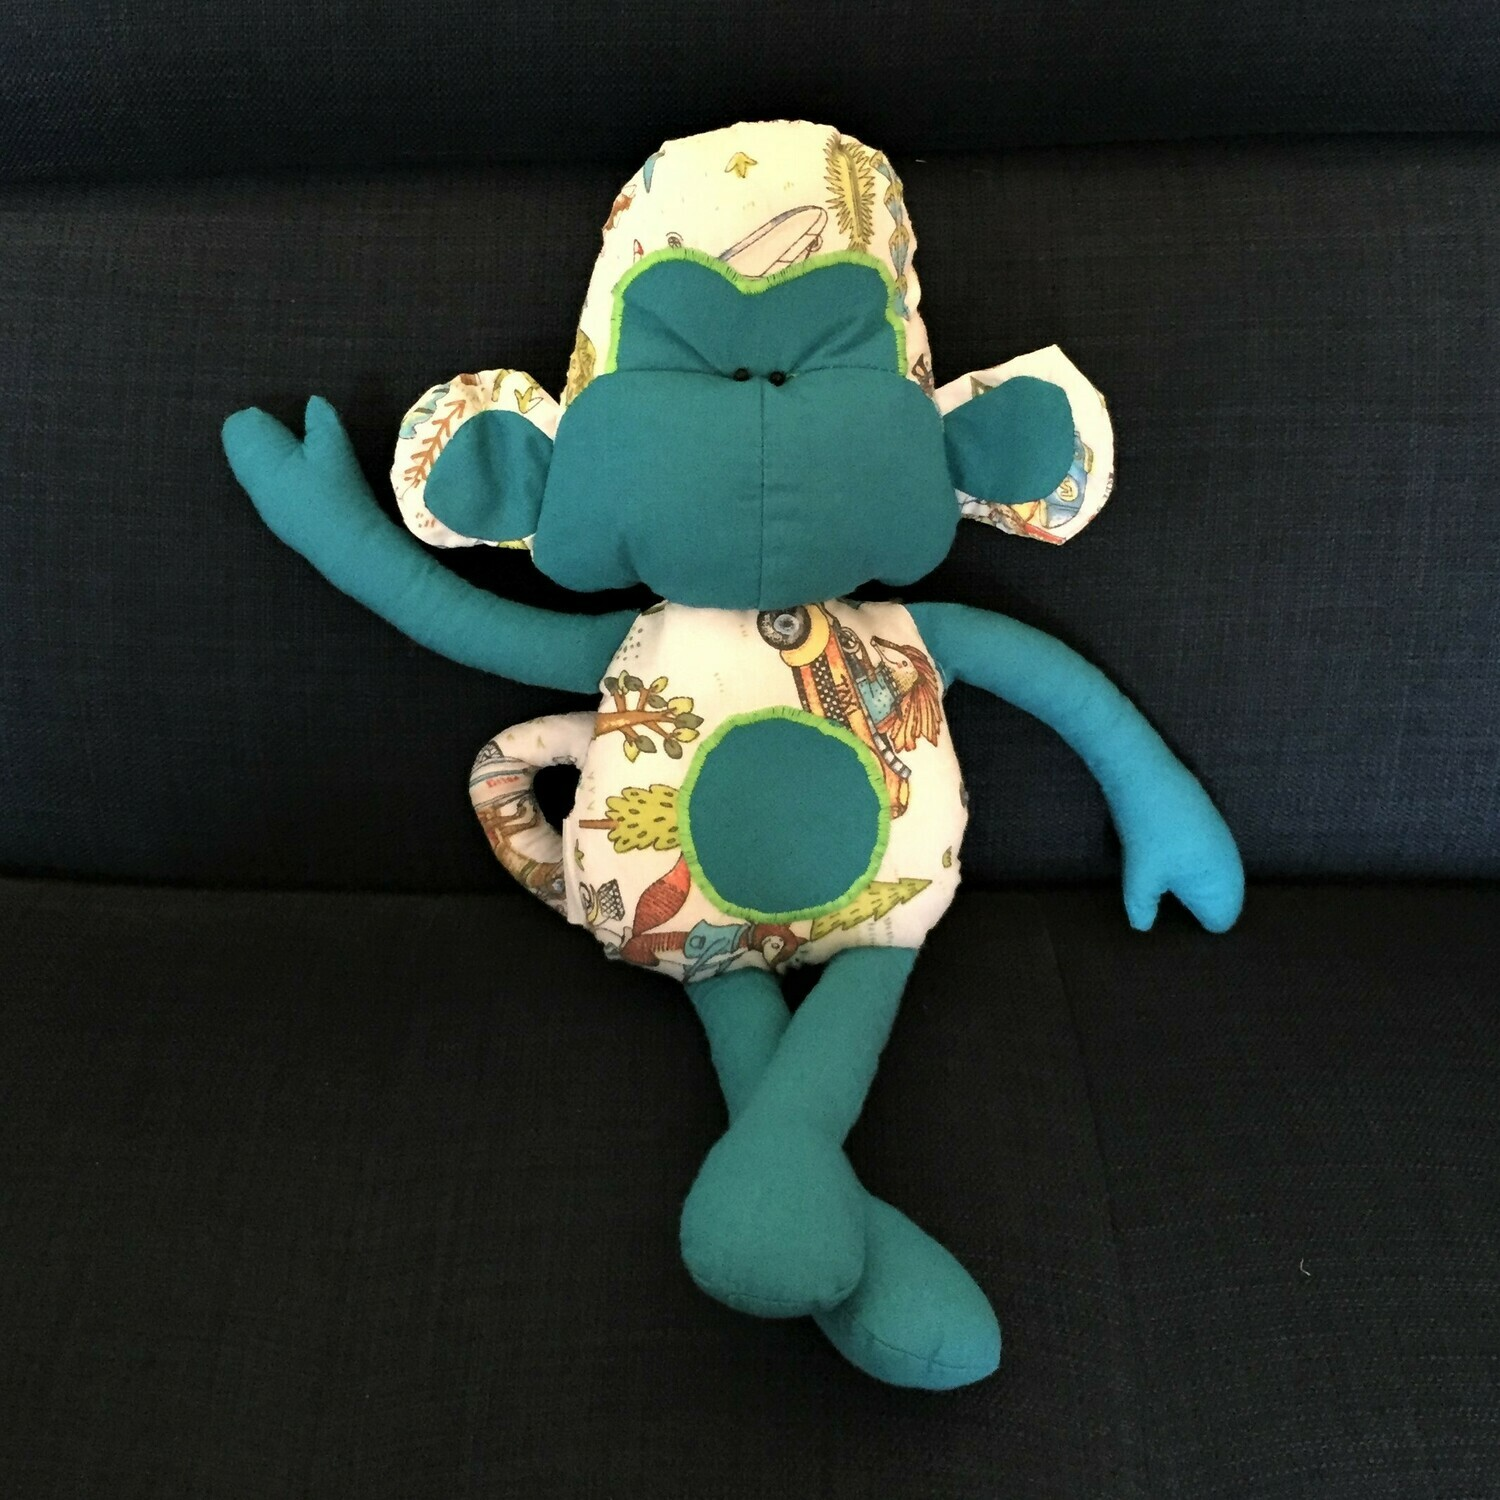 Toy: Monkey in  turquoise & print